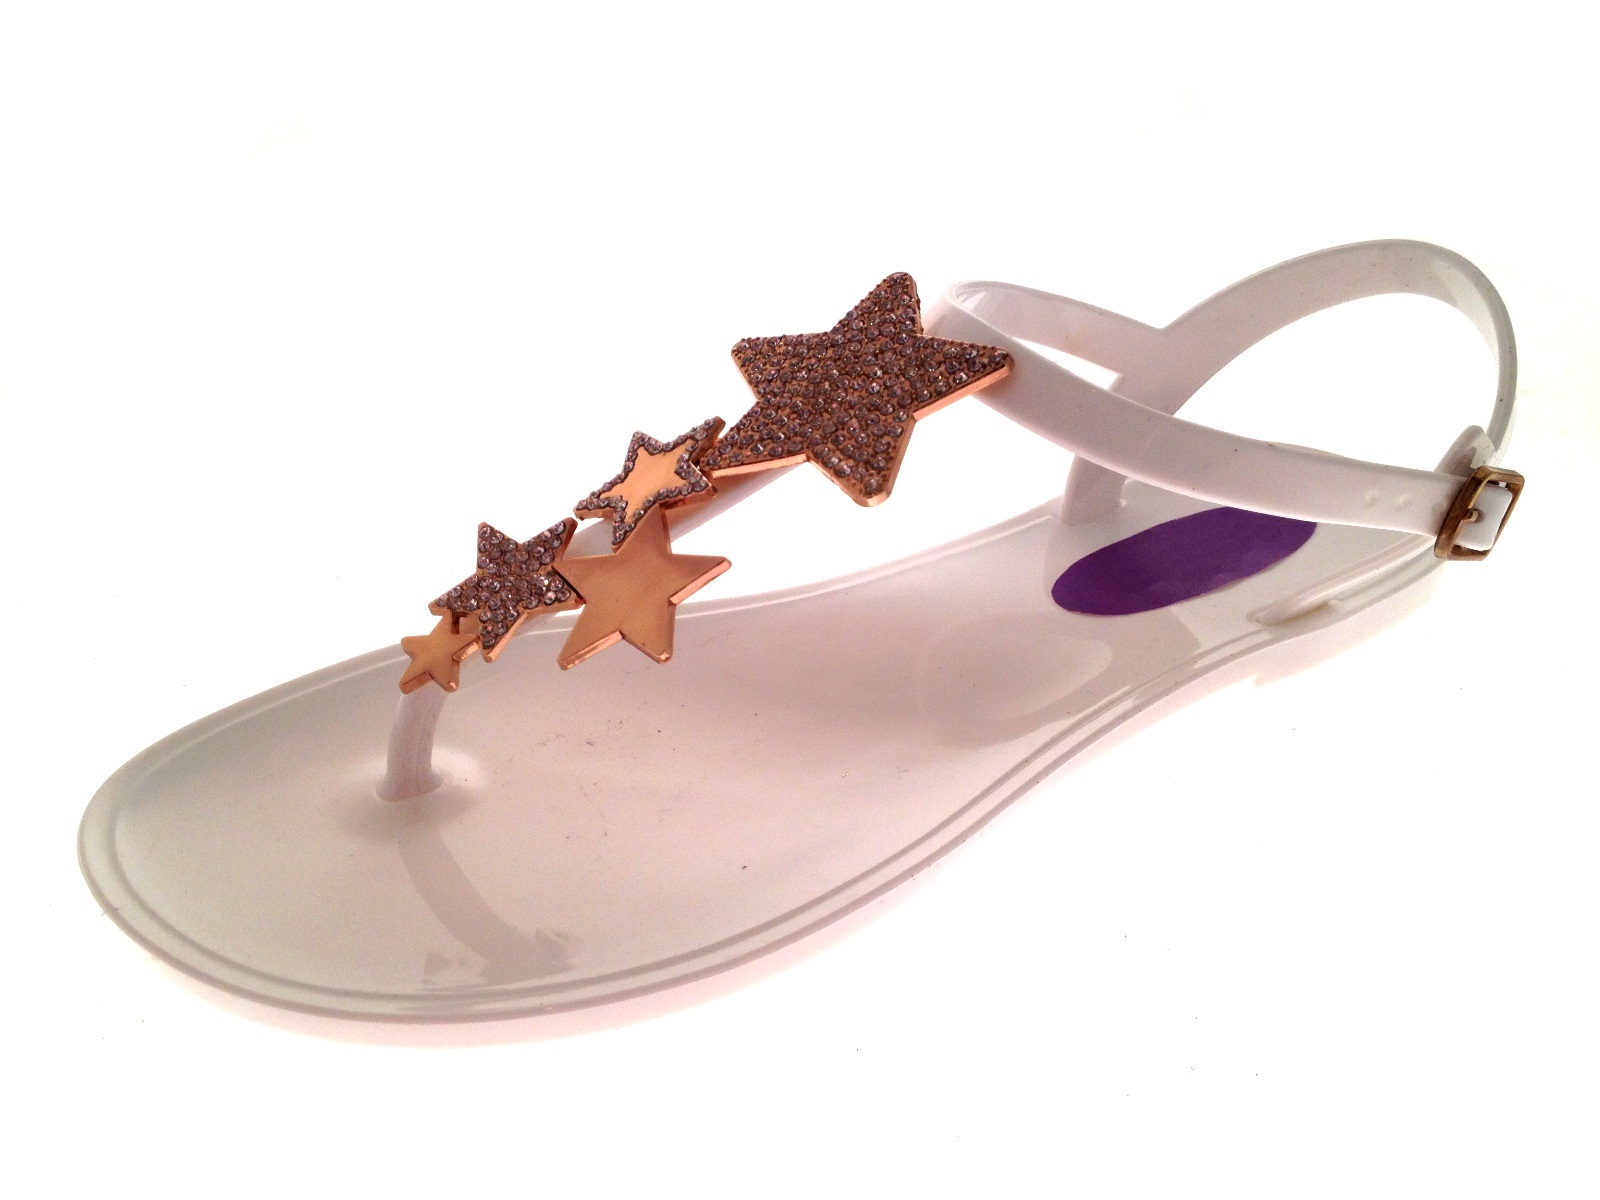 ae8506d055ba Womens Jelly Sandals Jewel Broach Diamante Star Toe Posts Jellies ...